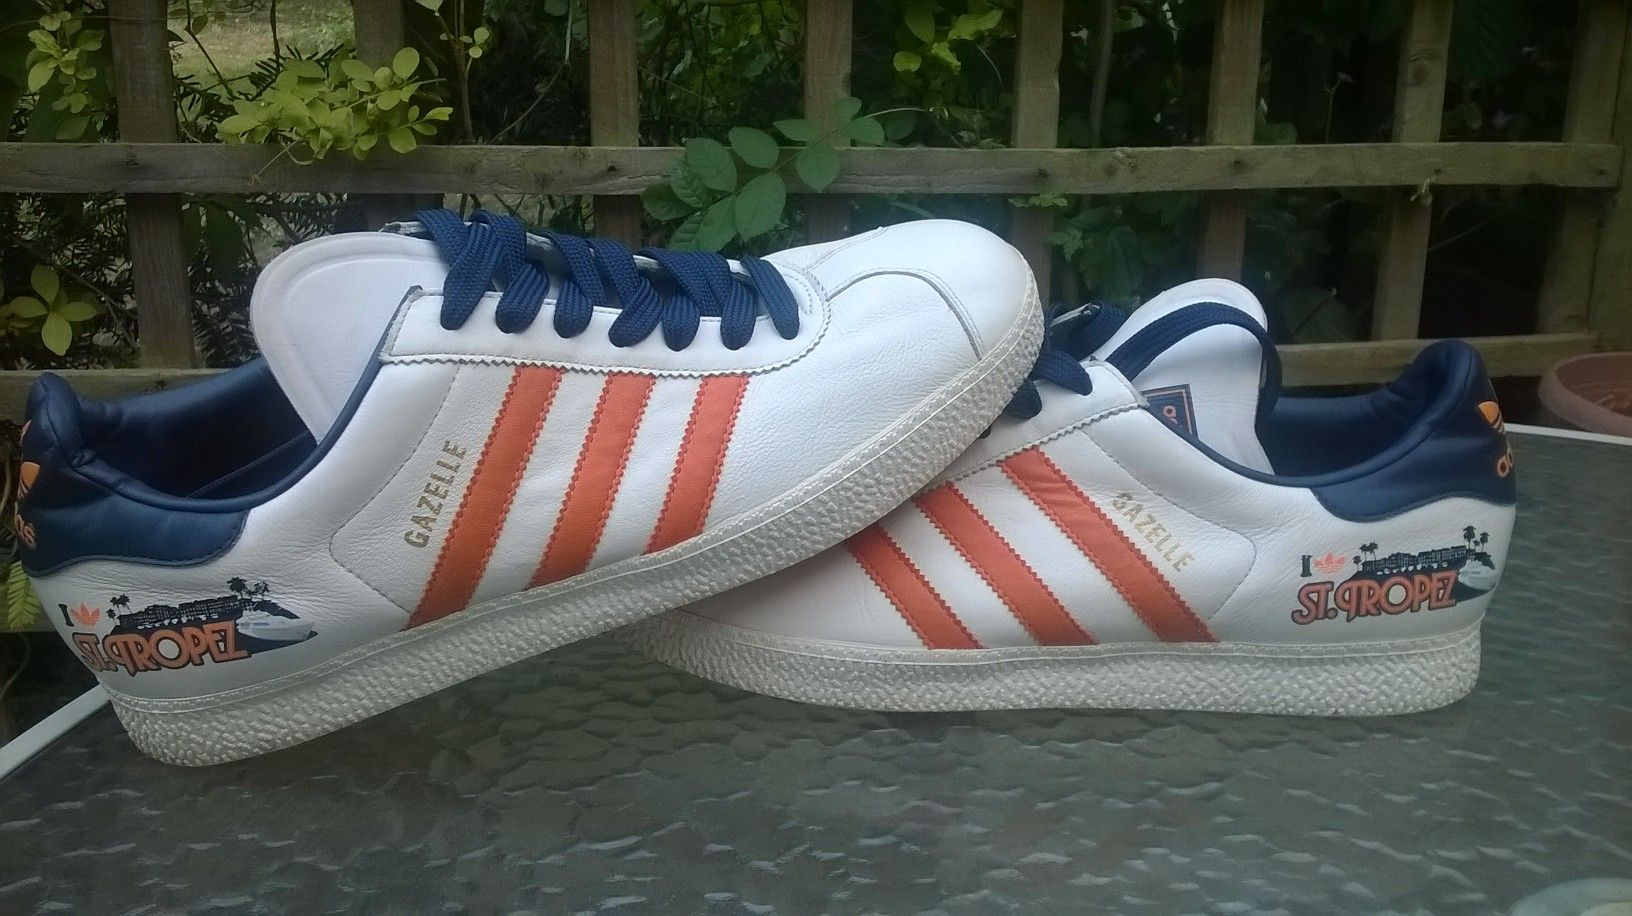 purchased recently. St Tropez Gazelles